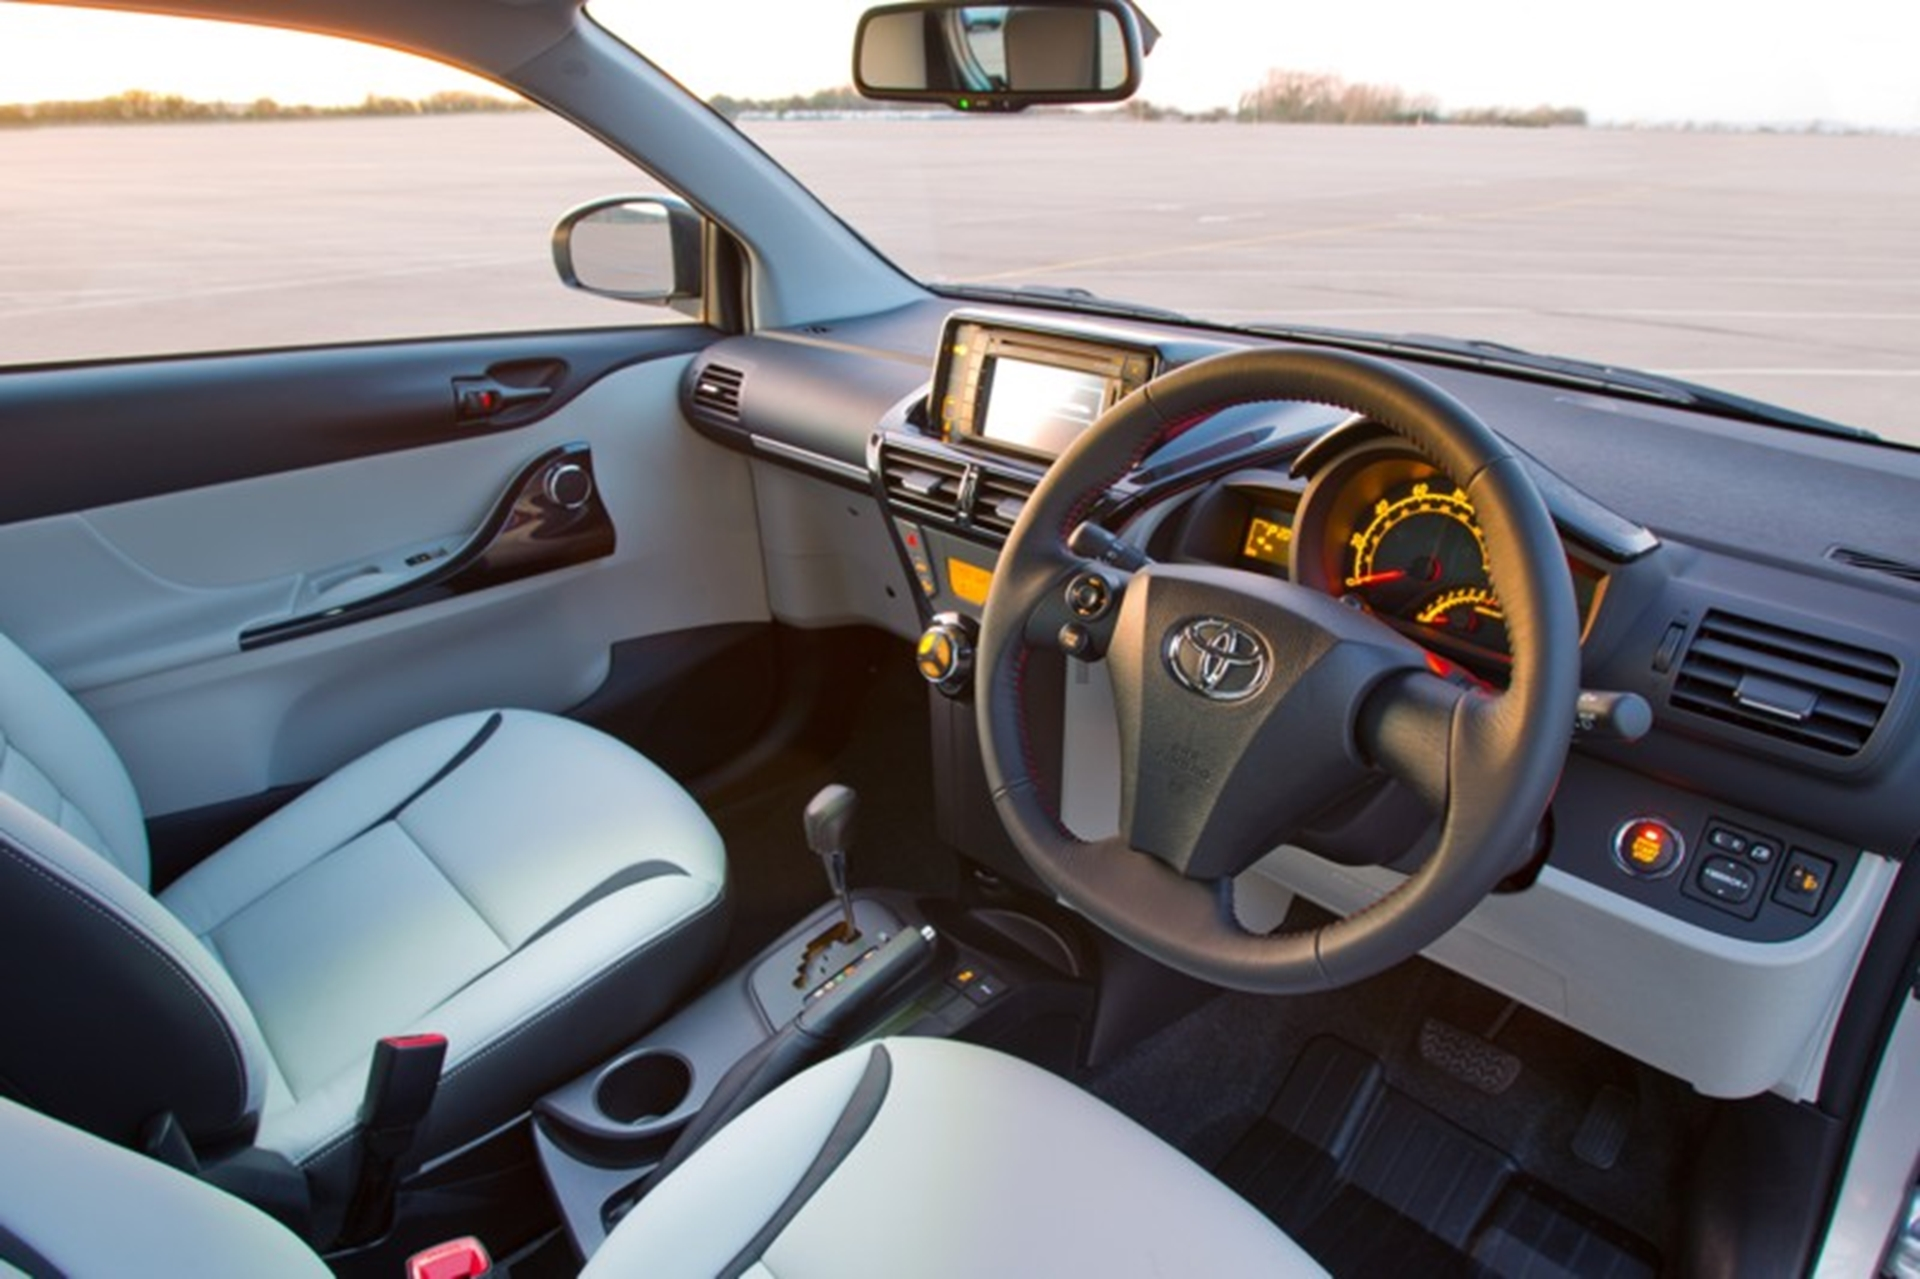 Toyota iQ: Custom leather interior